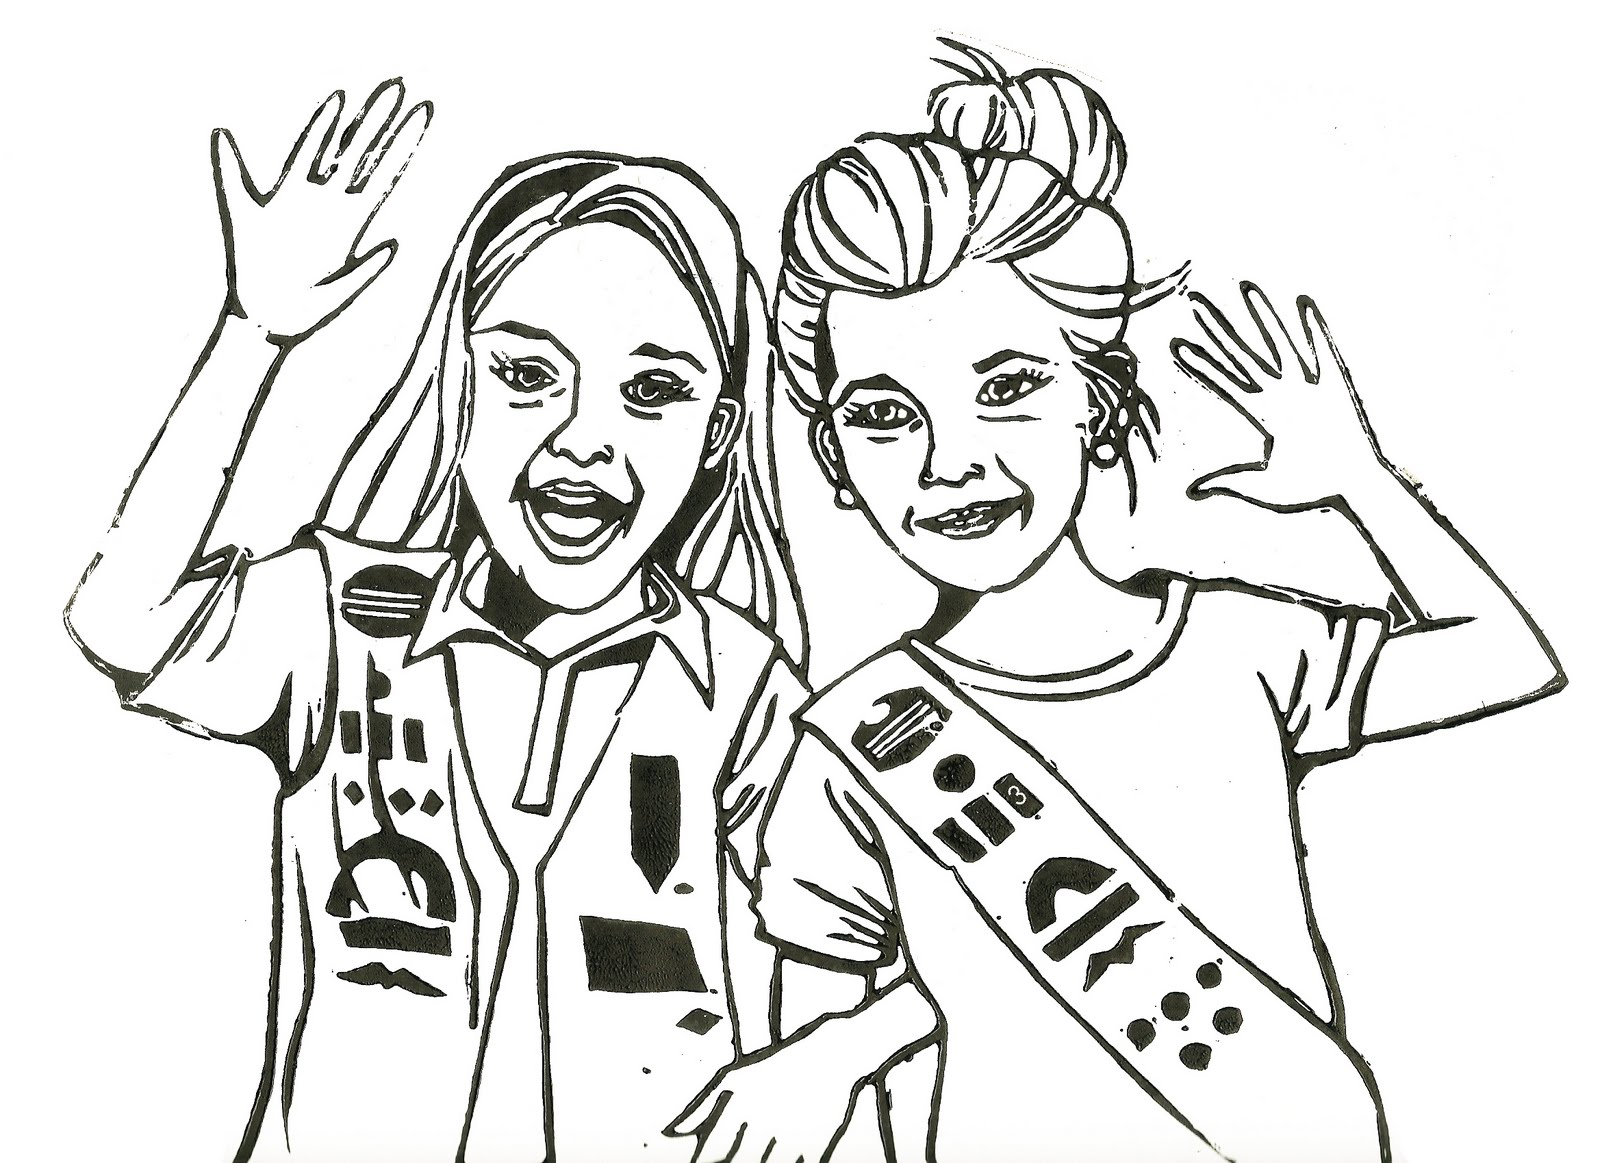 Juliette Low Coloring Pages http://lissartori.blogspot.com/2011/04/girl-scouts.html